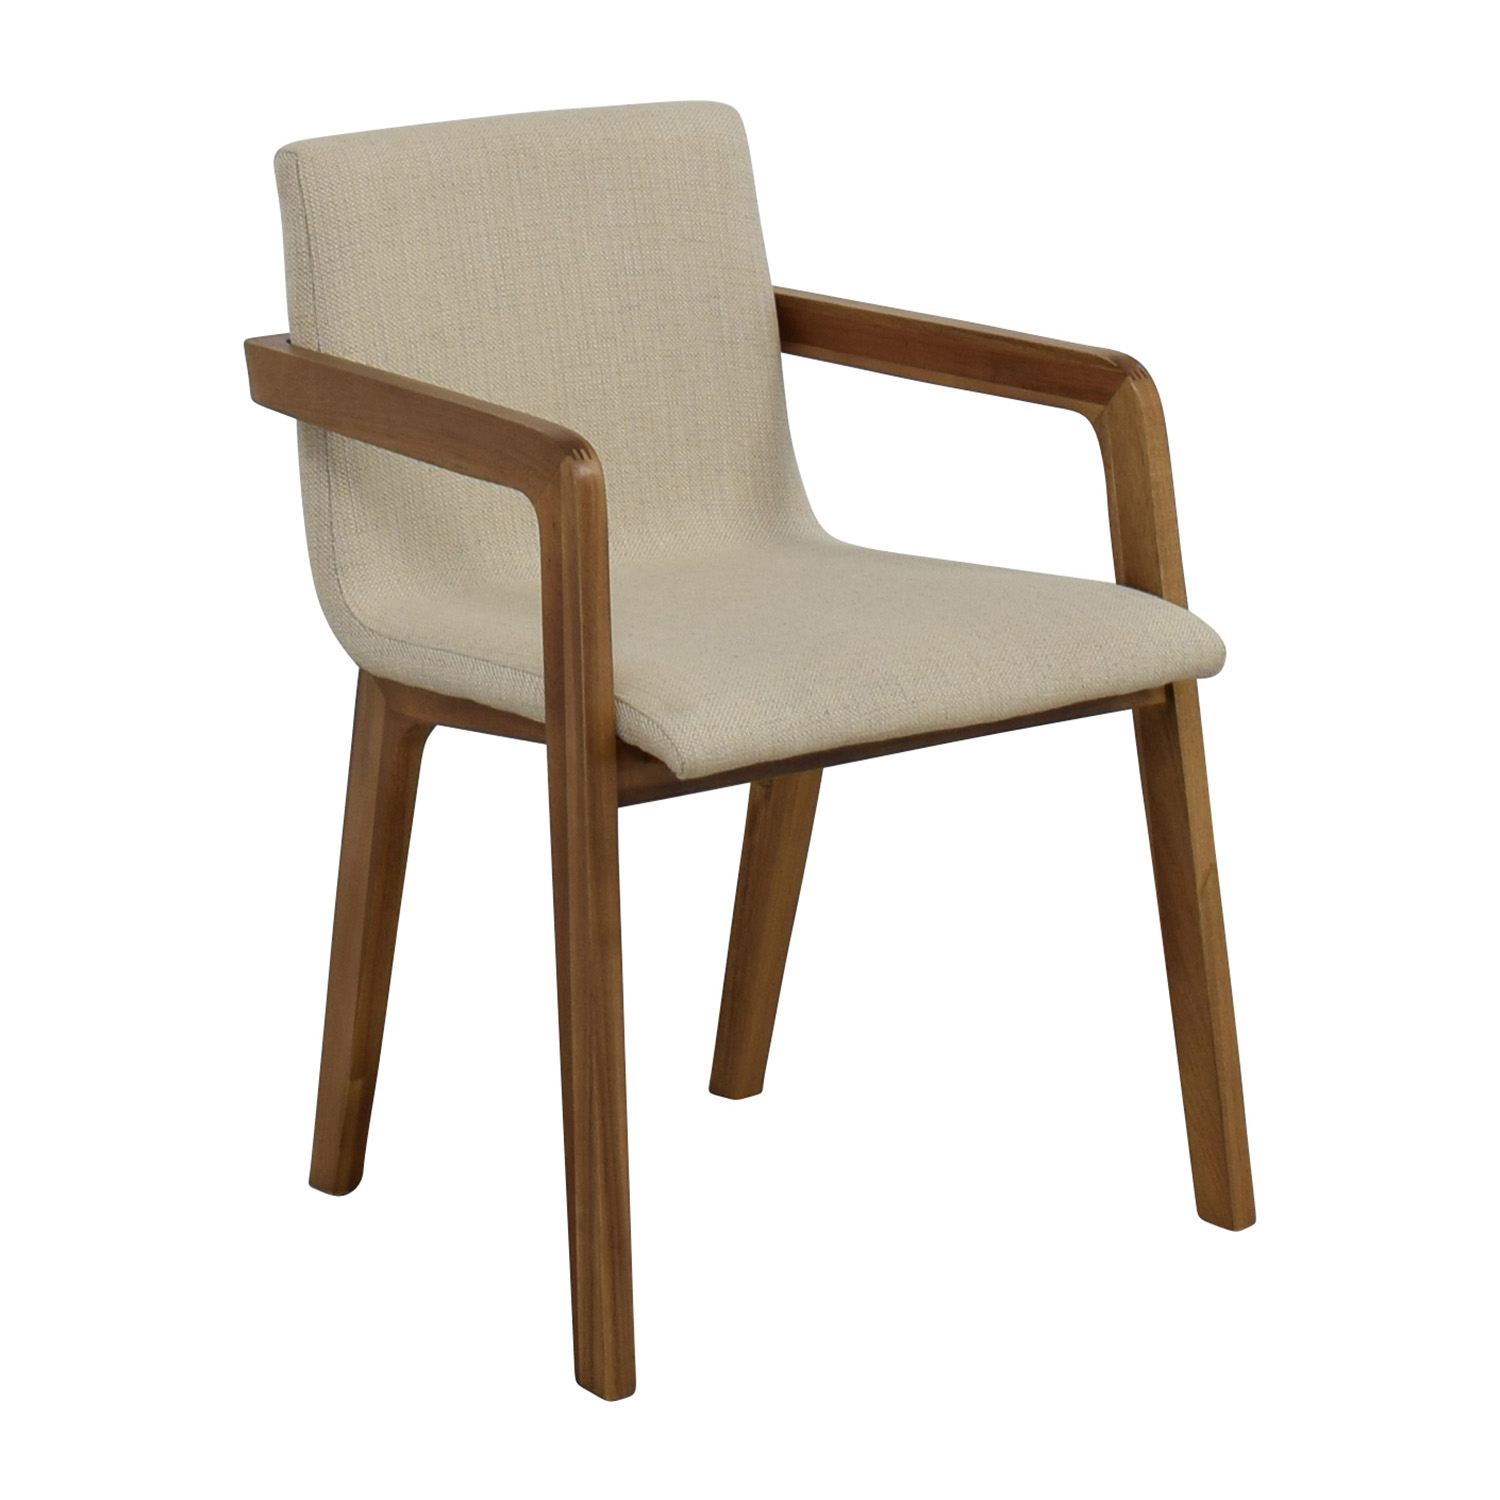 mid century accent chair slipcovers for armless chairs 58 off cb2 natural